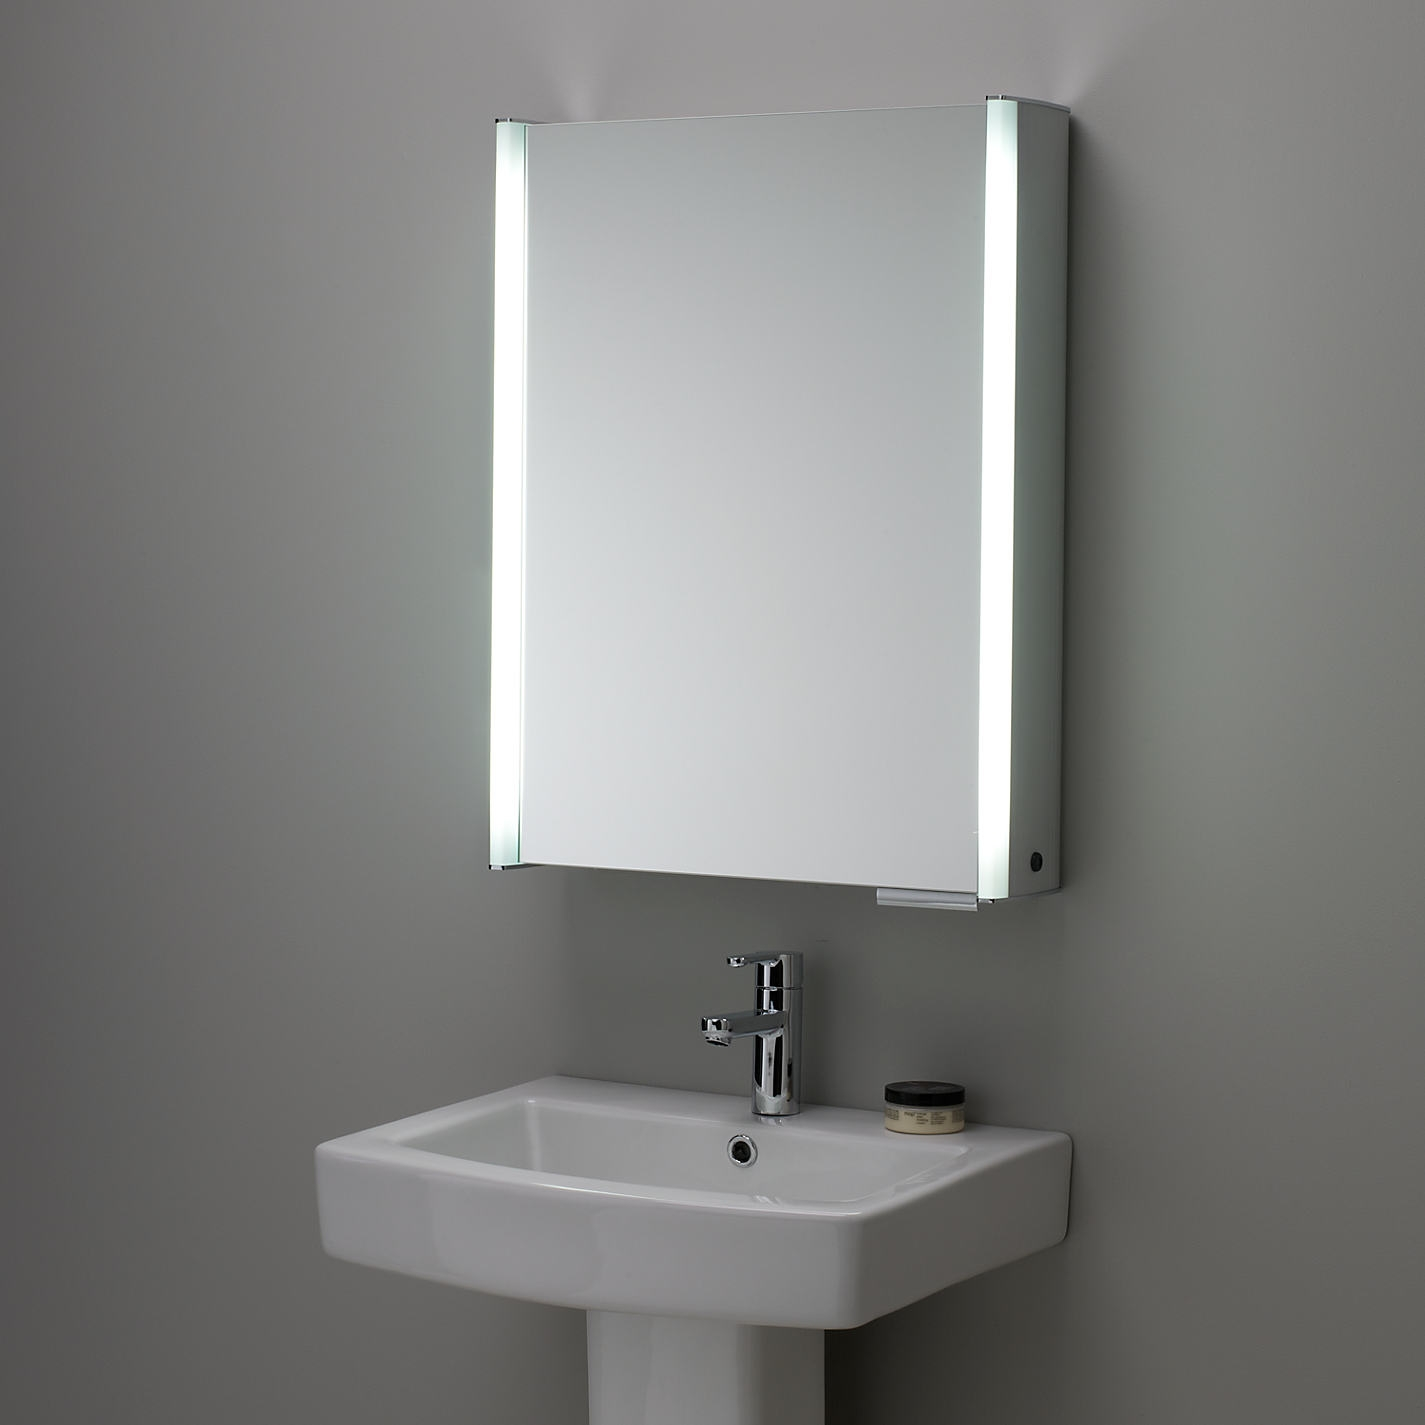 Permalink to Mirrored Bathroom Cabinet With Light And Shaver Socket